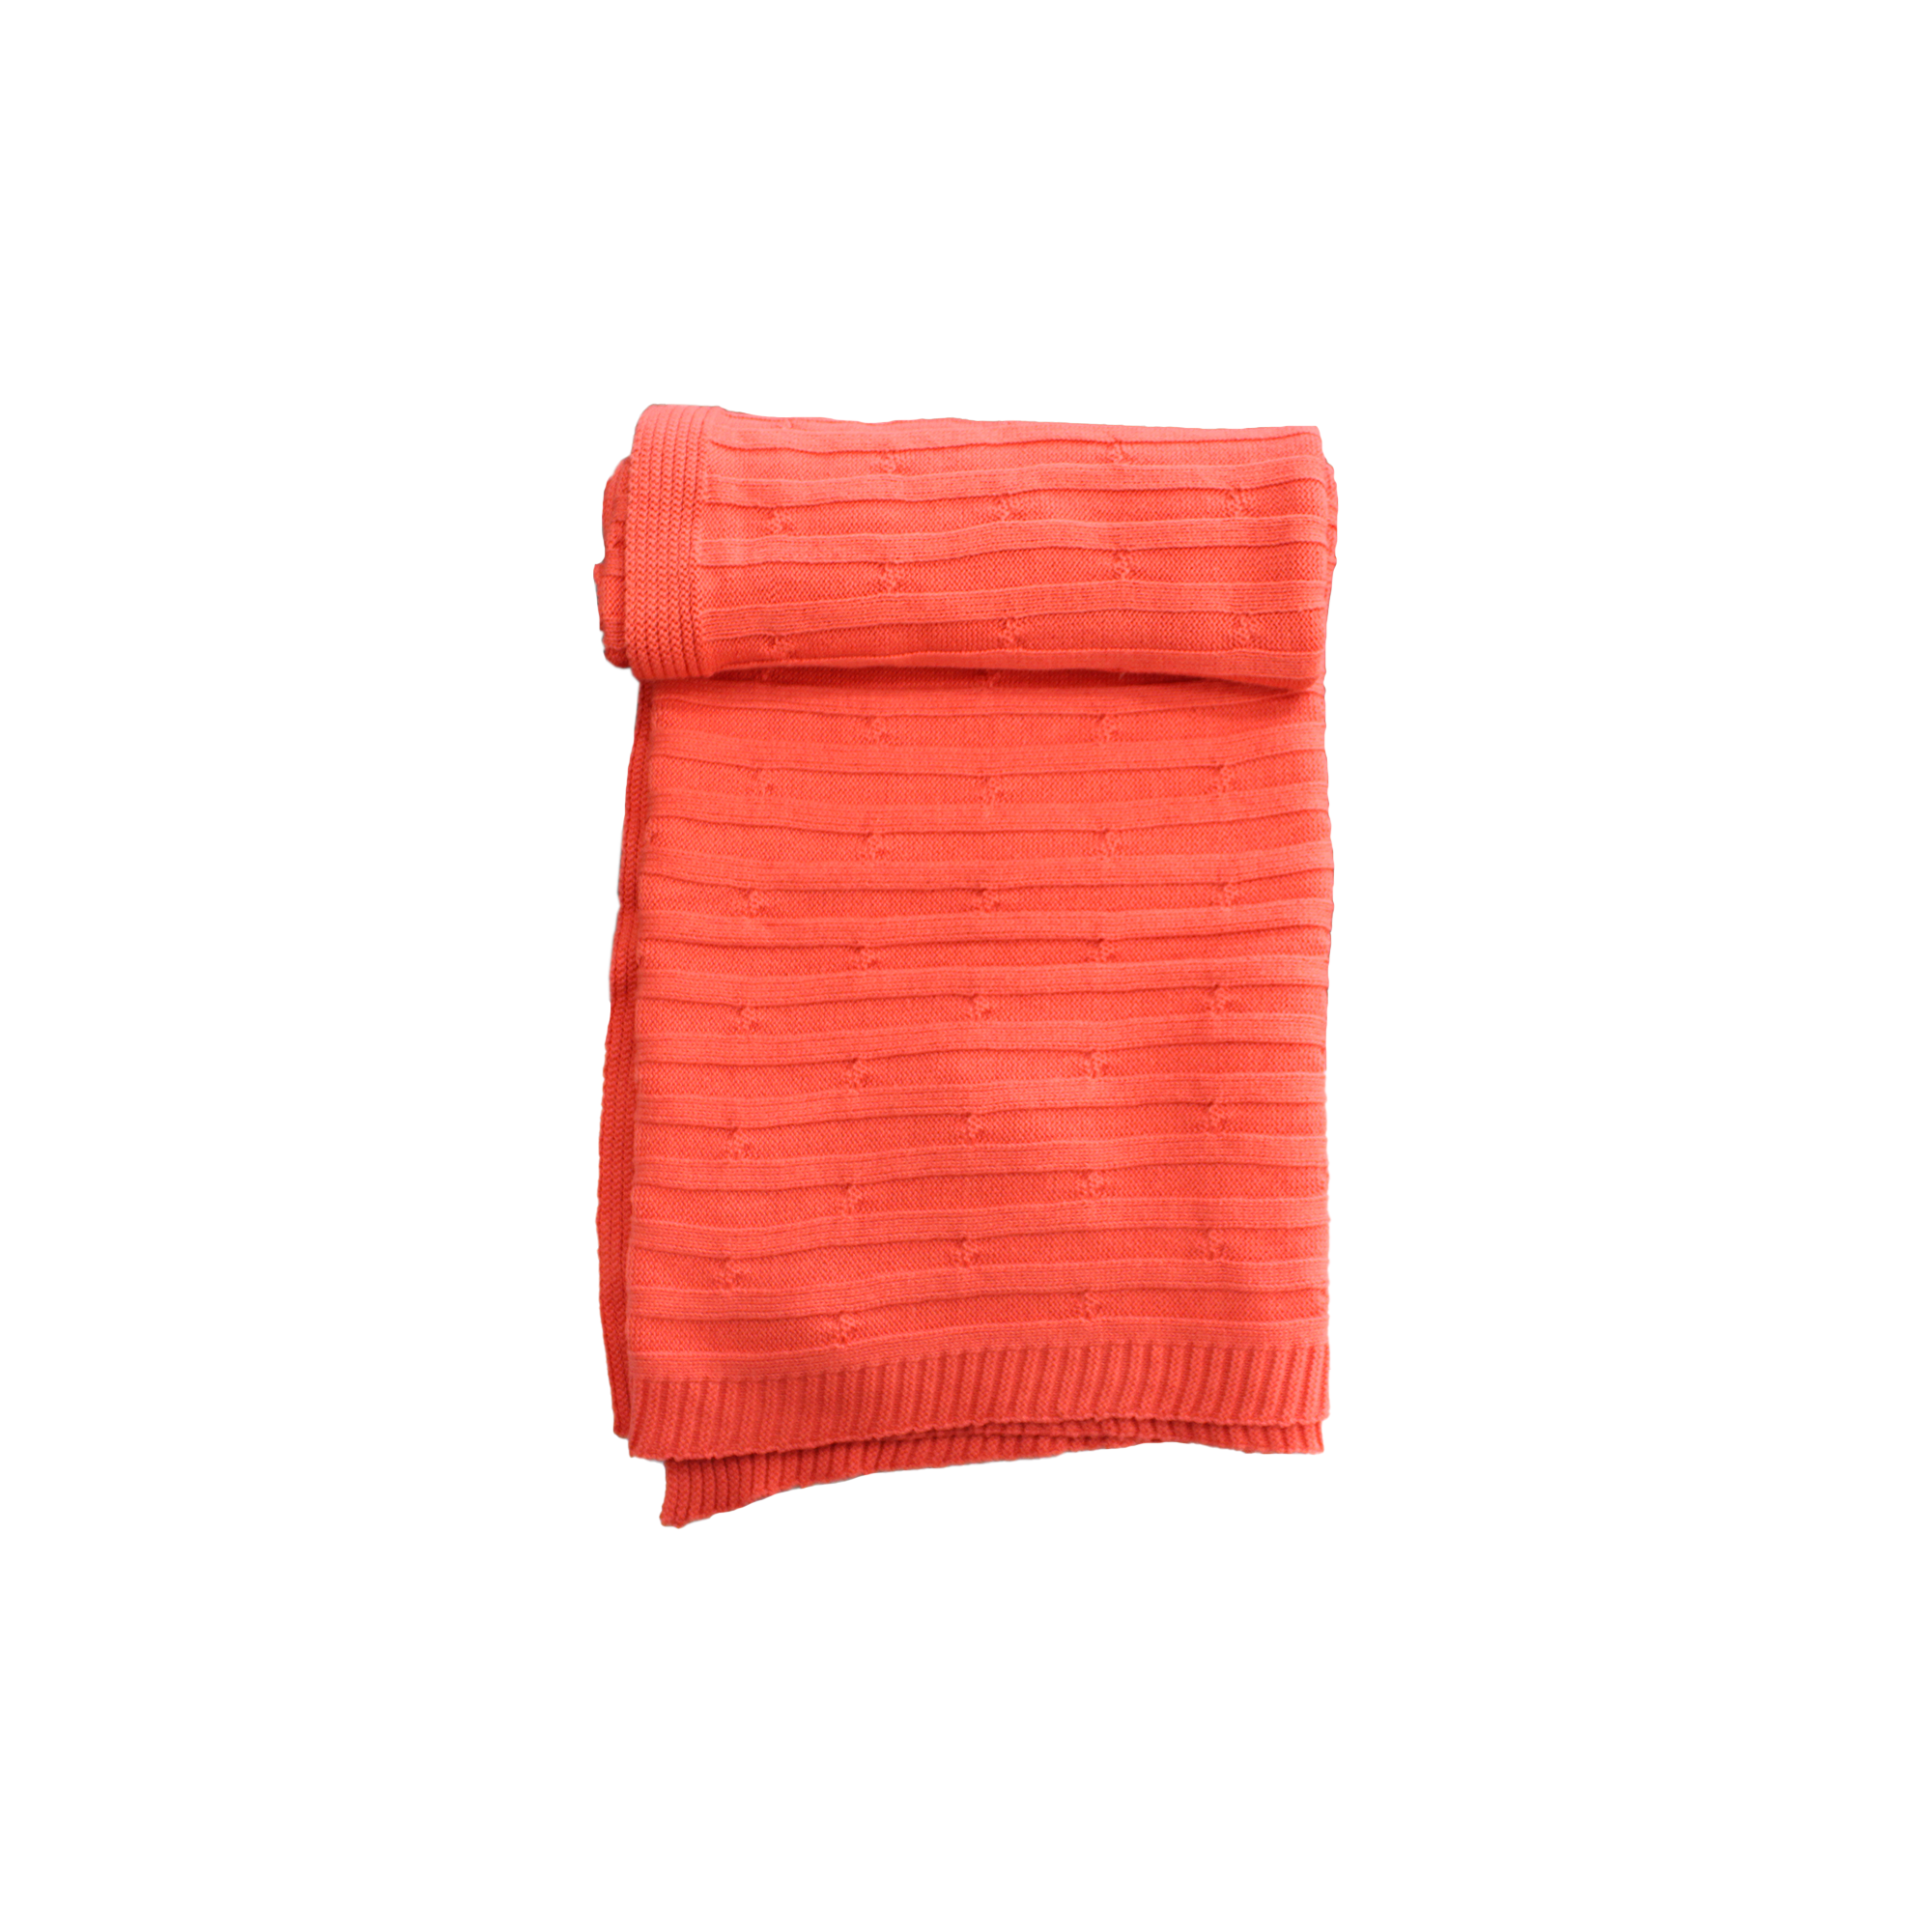 Dream cable coral Knitted baby blanket